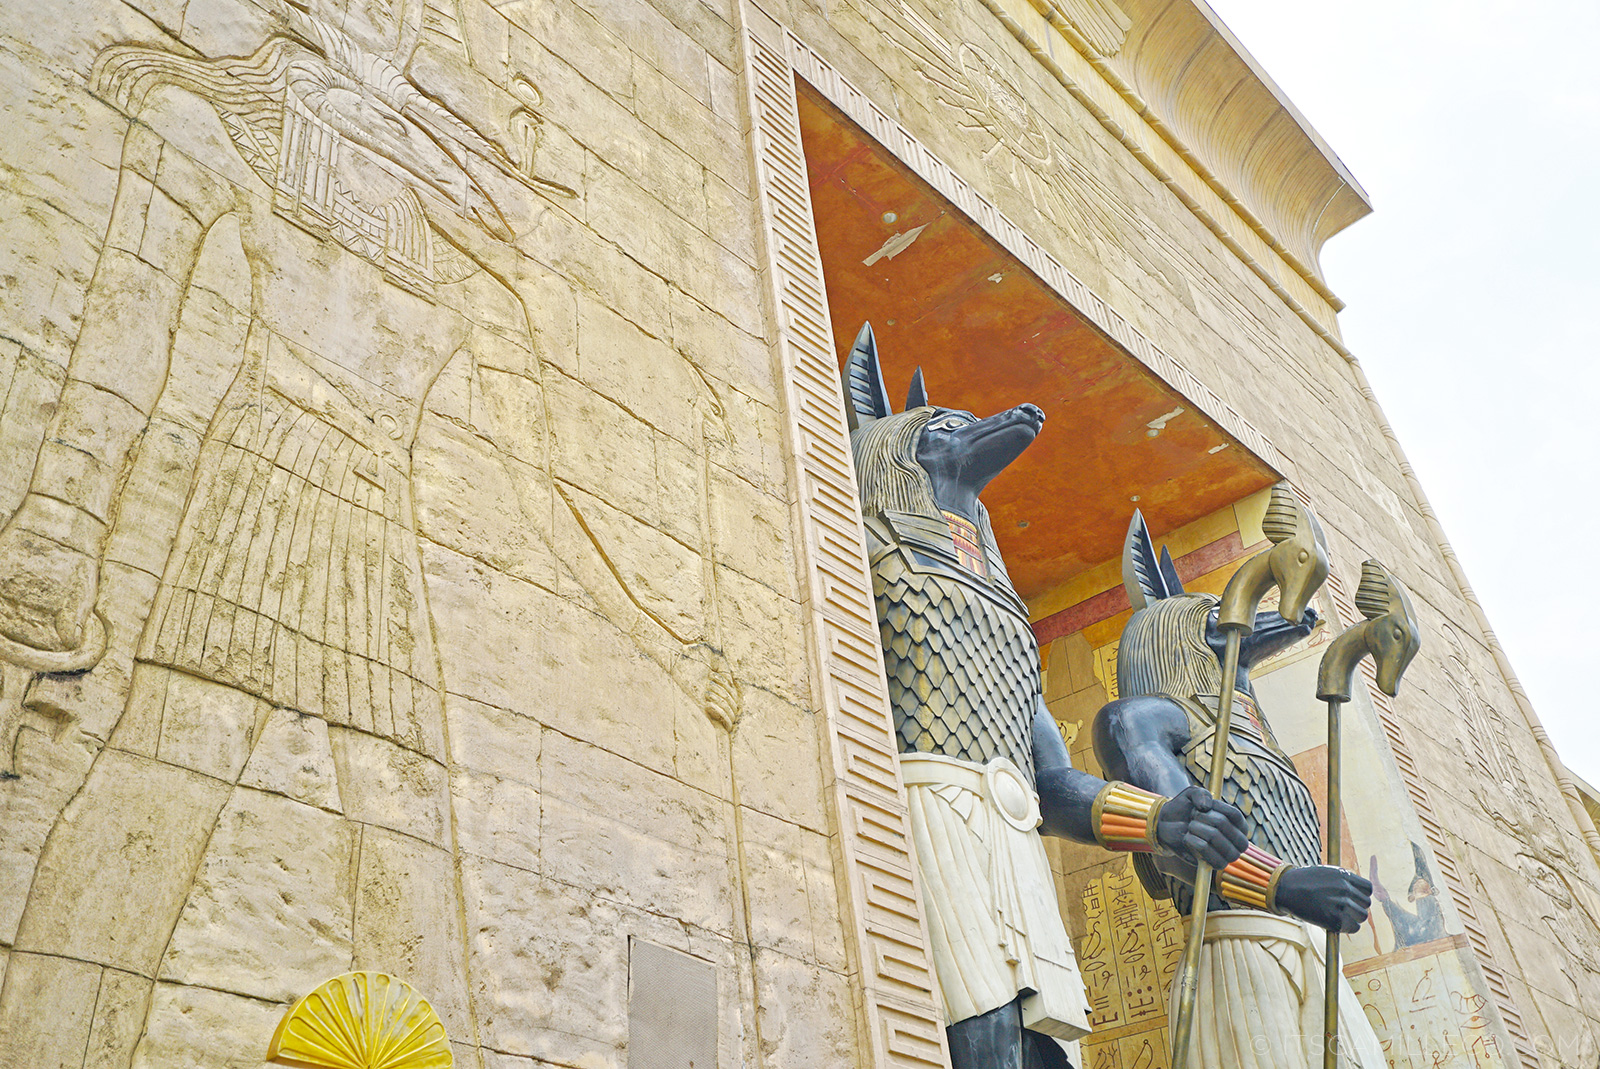 The photo shows the Ancient Egypt area at the Universal Studios Singapore